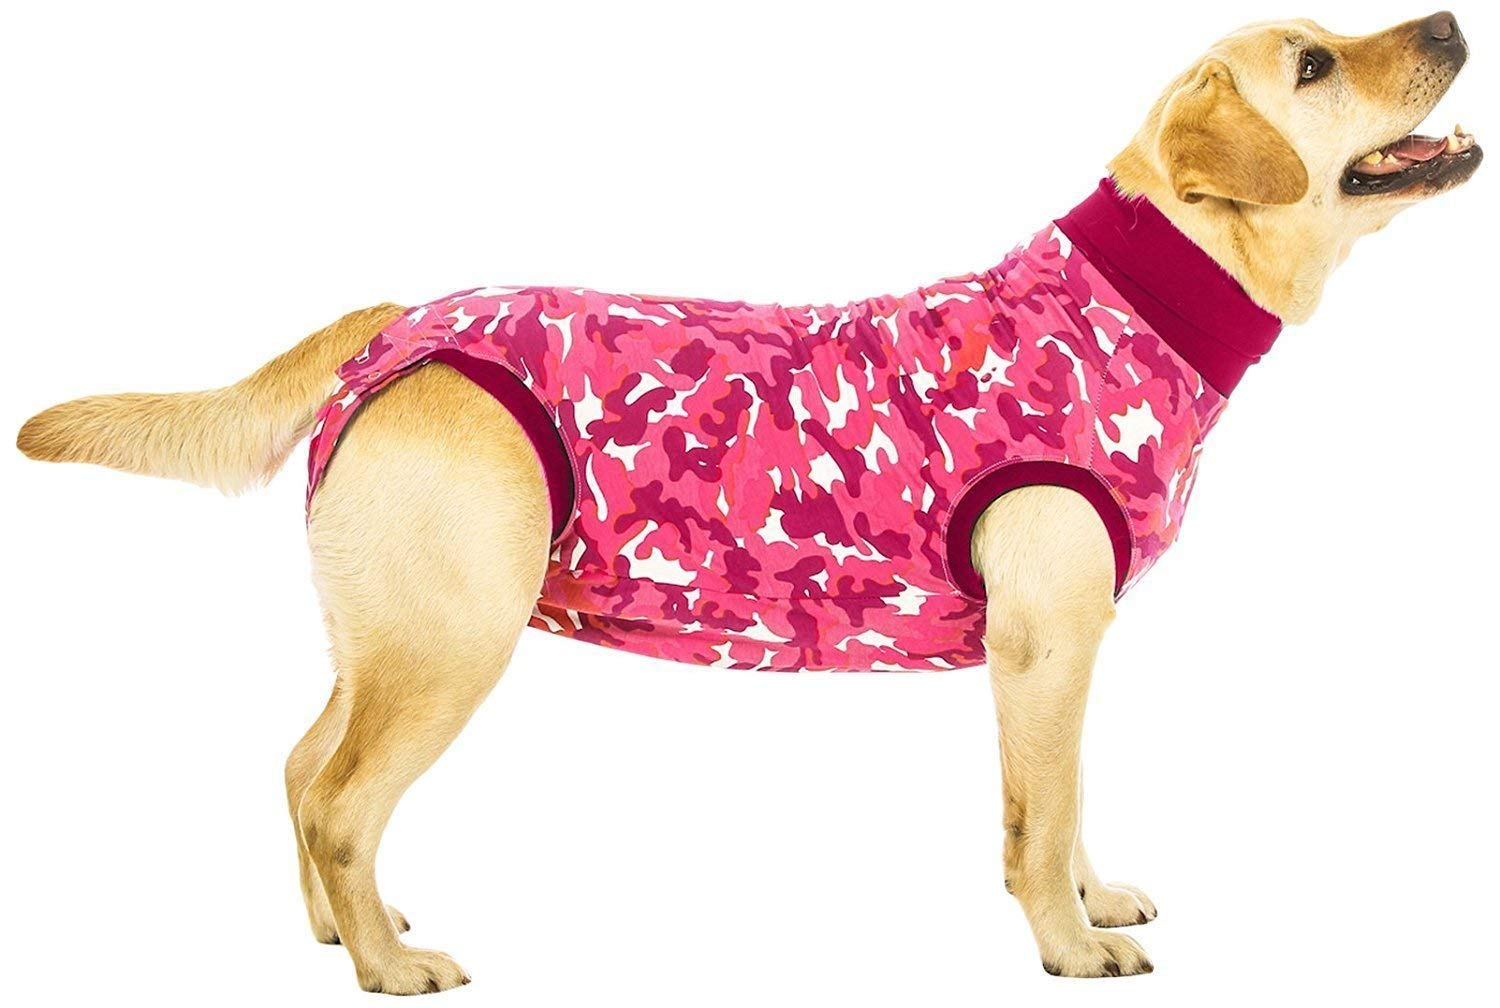 Suitical Recovery Suit Dog, Large, Pink Camouflage by Suitical